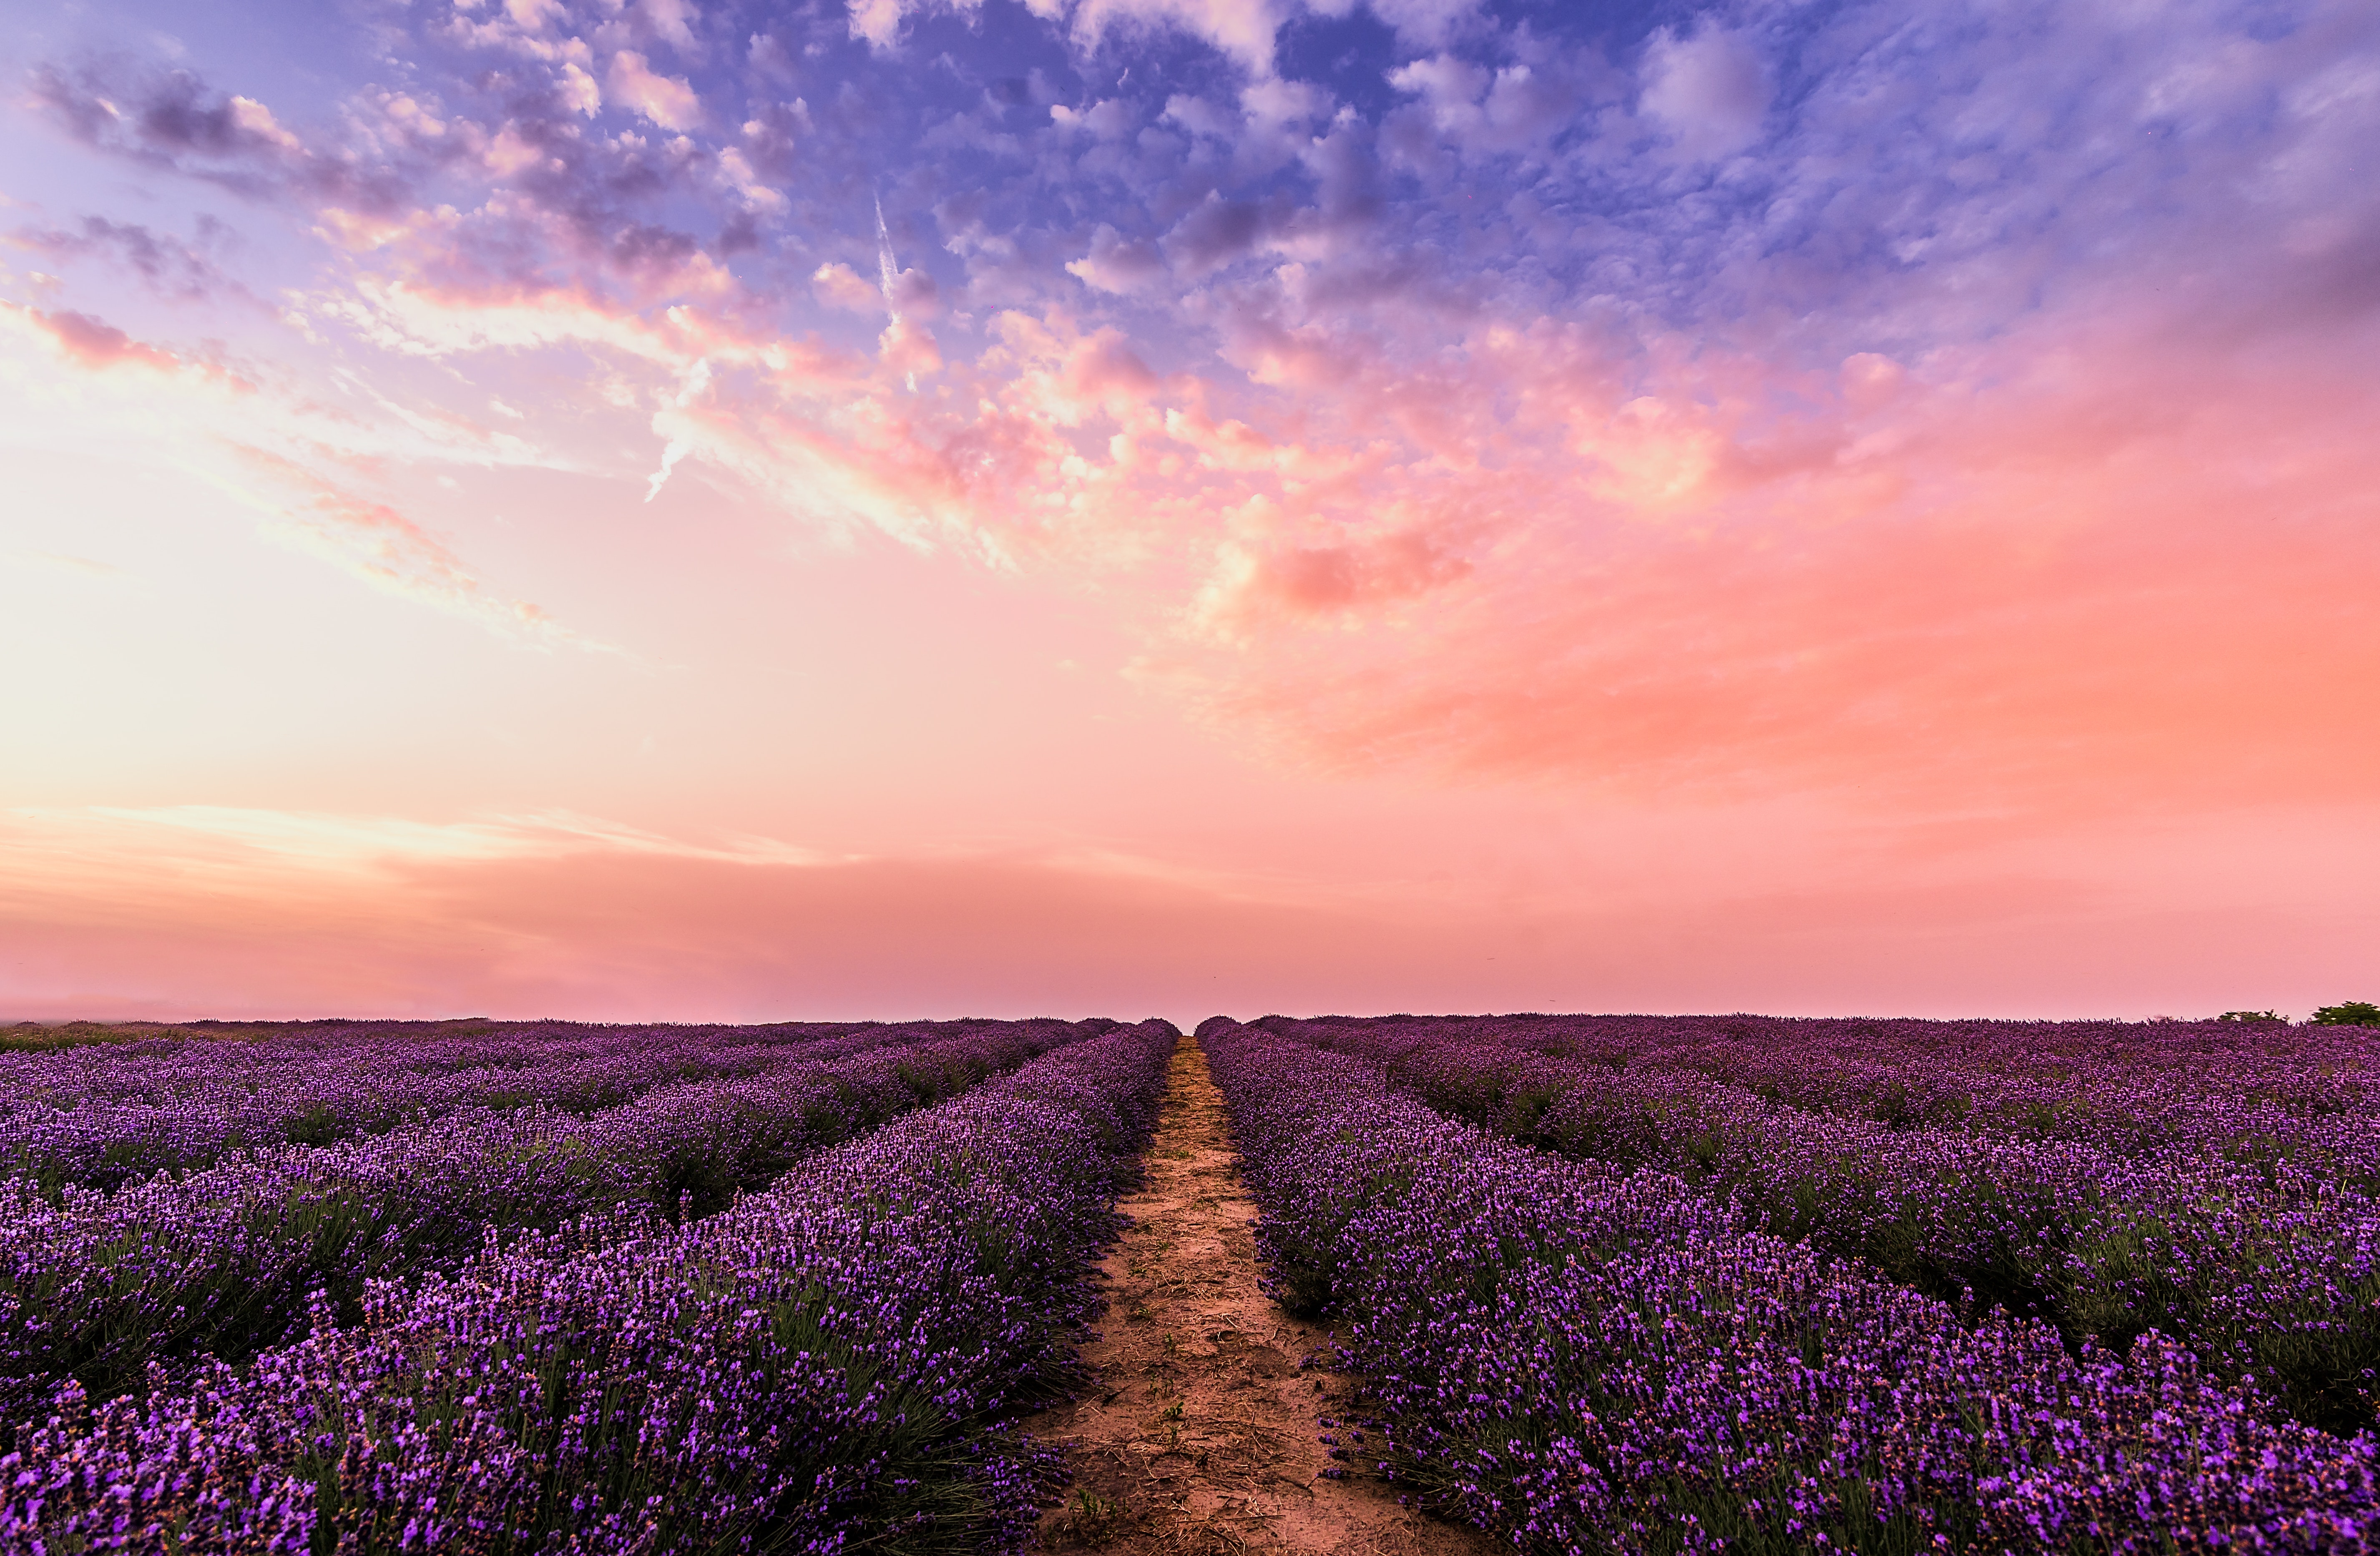 Field of purple lavender in rows leading to the horizon with a pink and blue clouded sky.